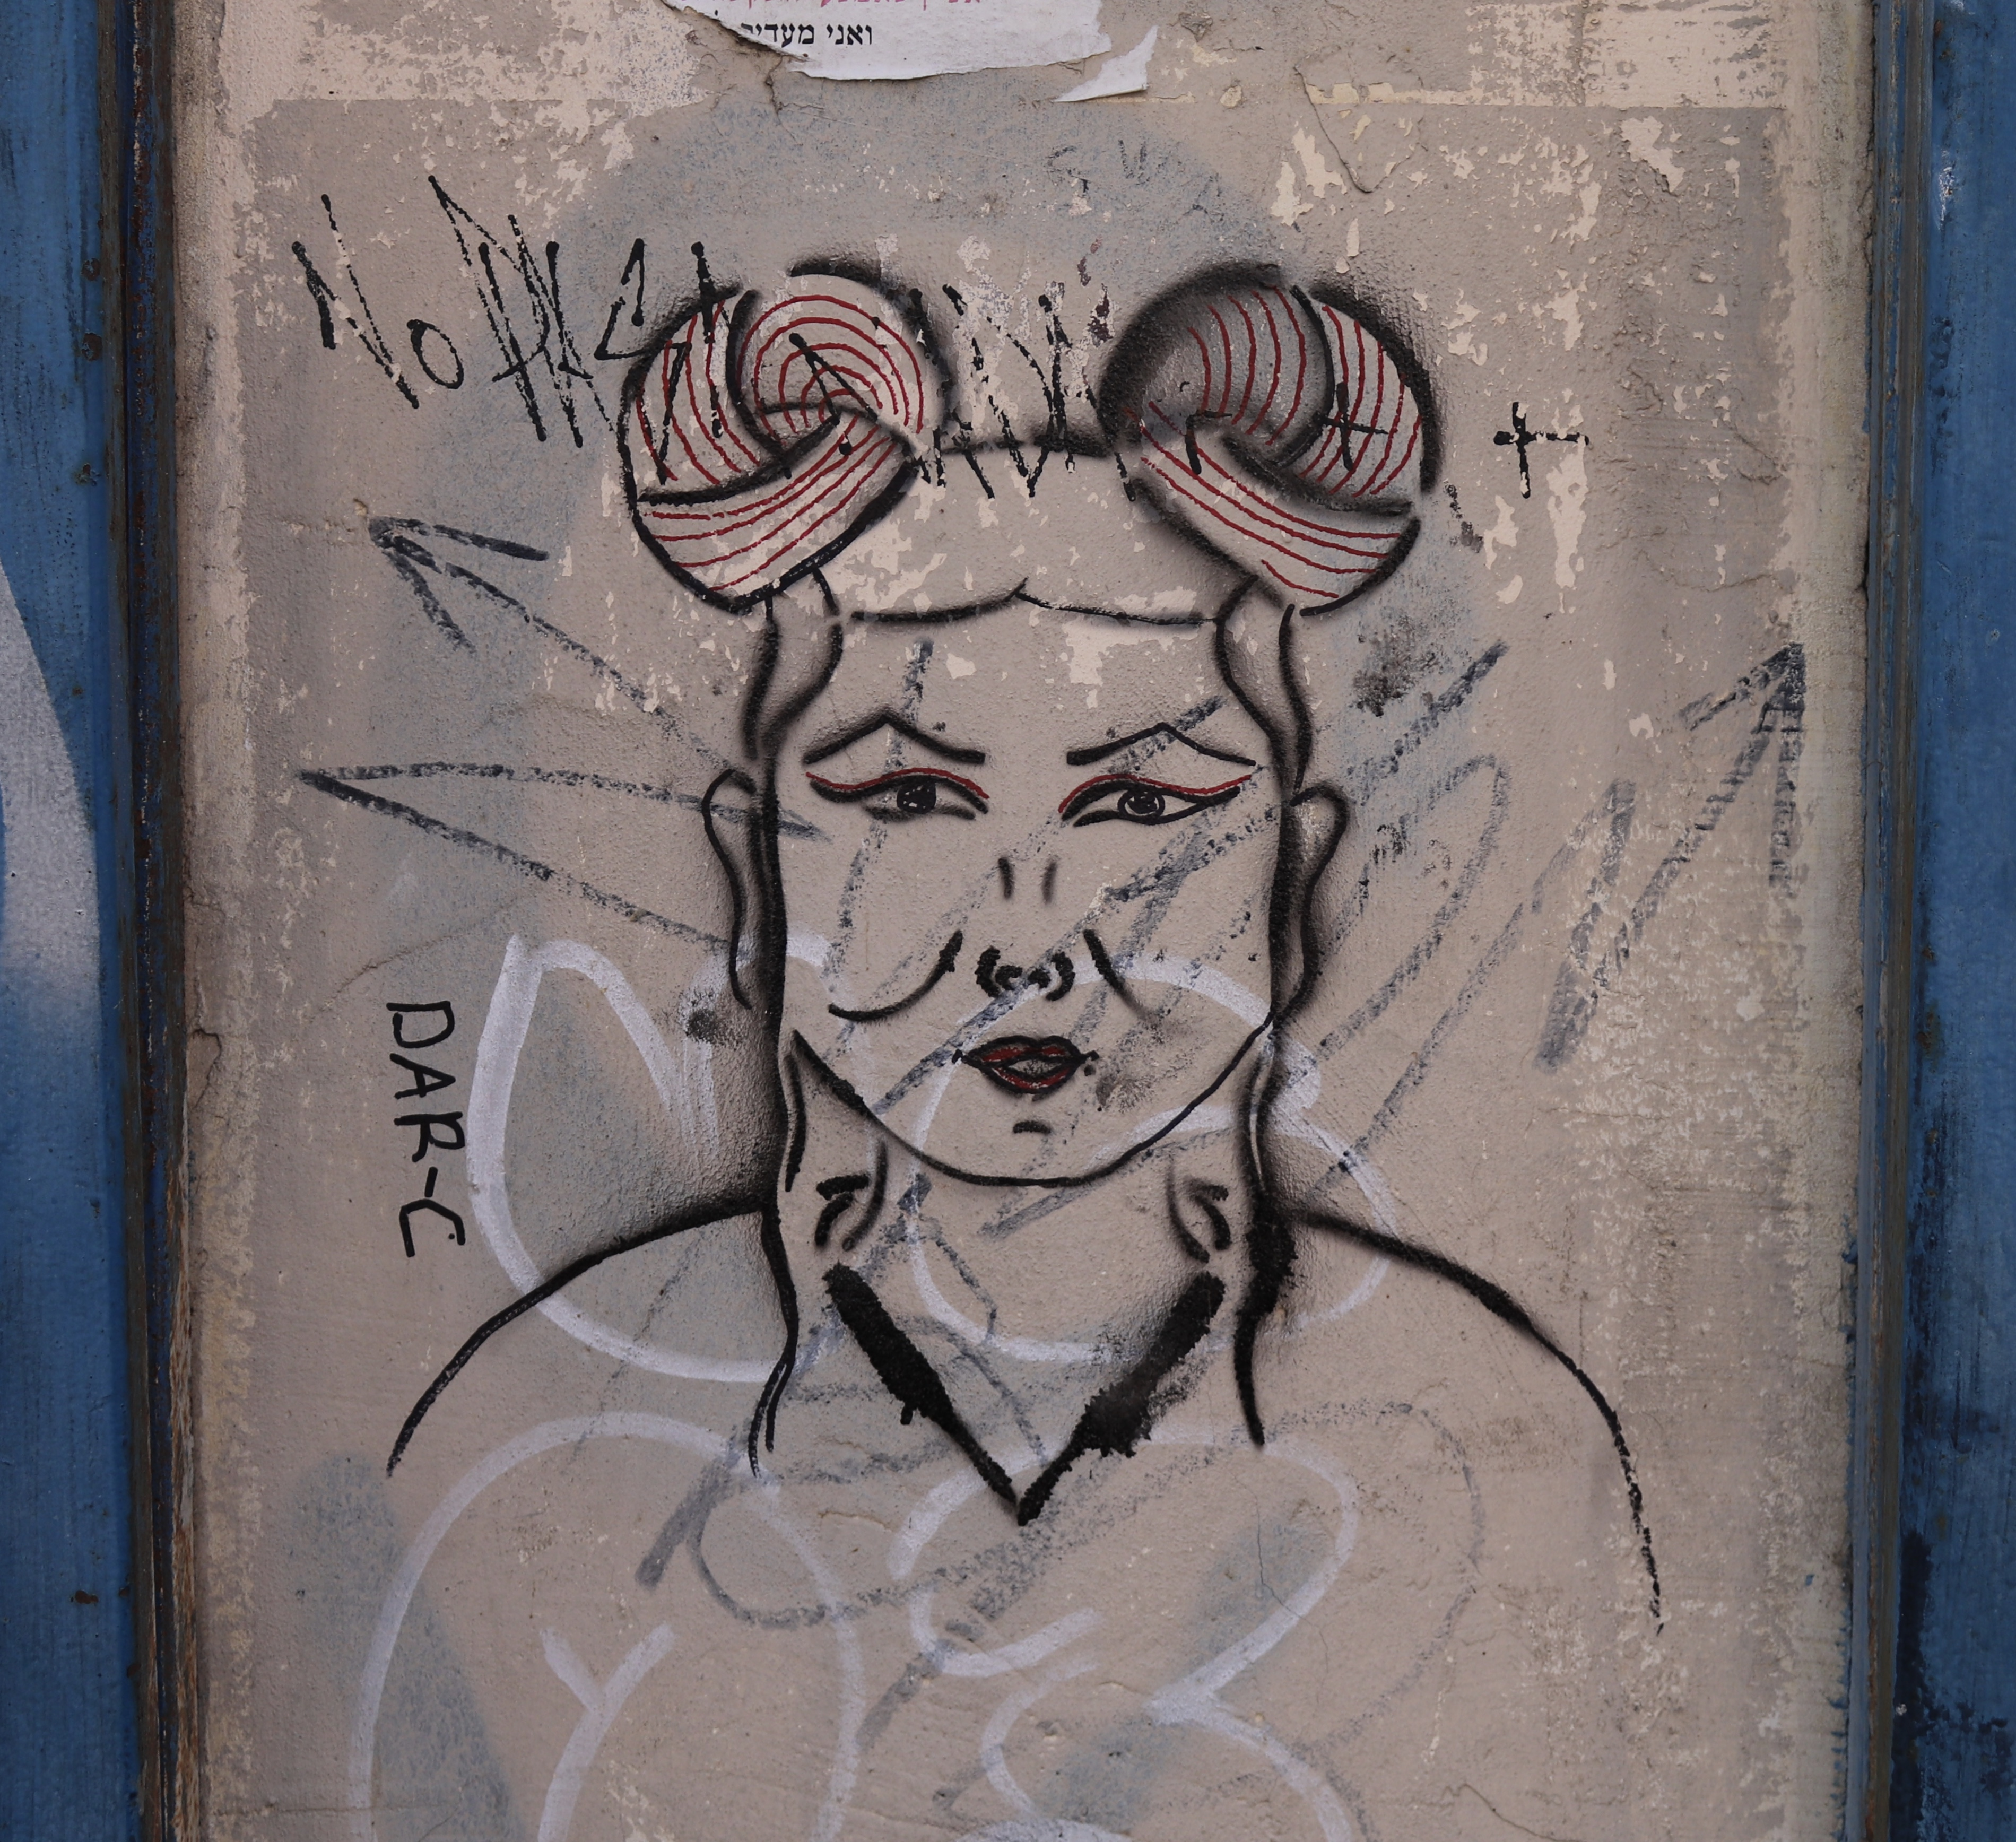 Netta themed graffiti in the Yemenite Quarter